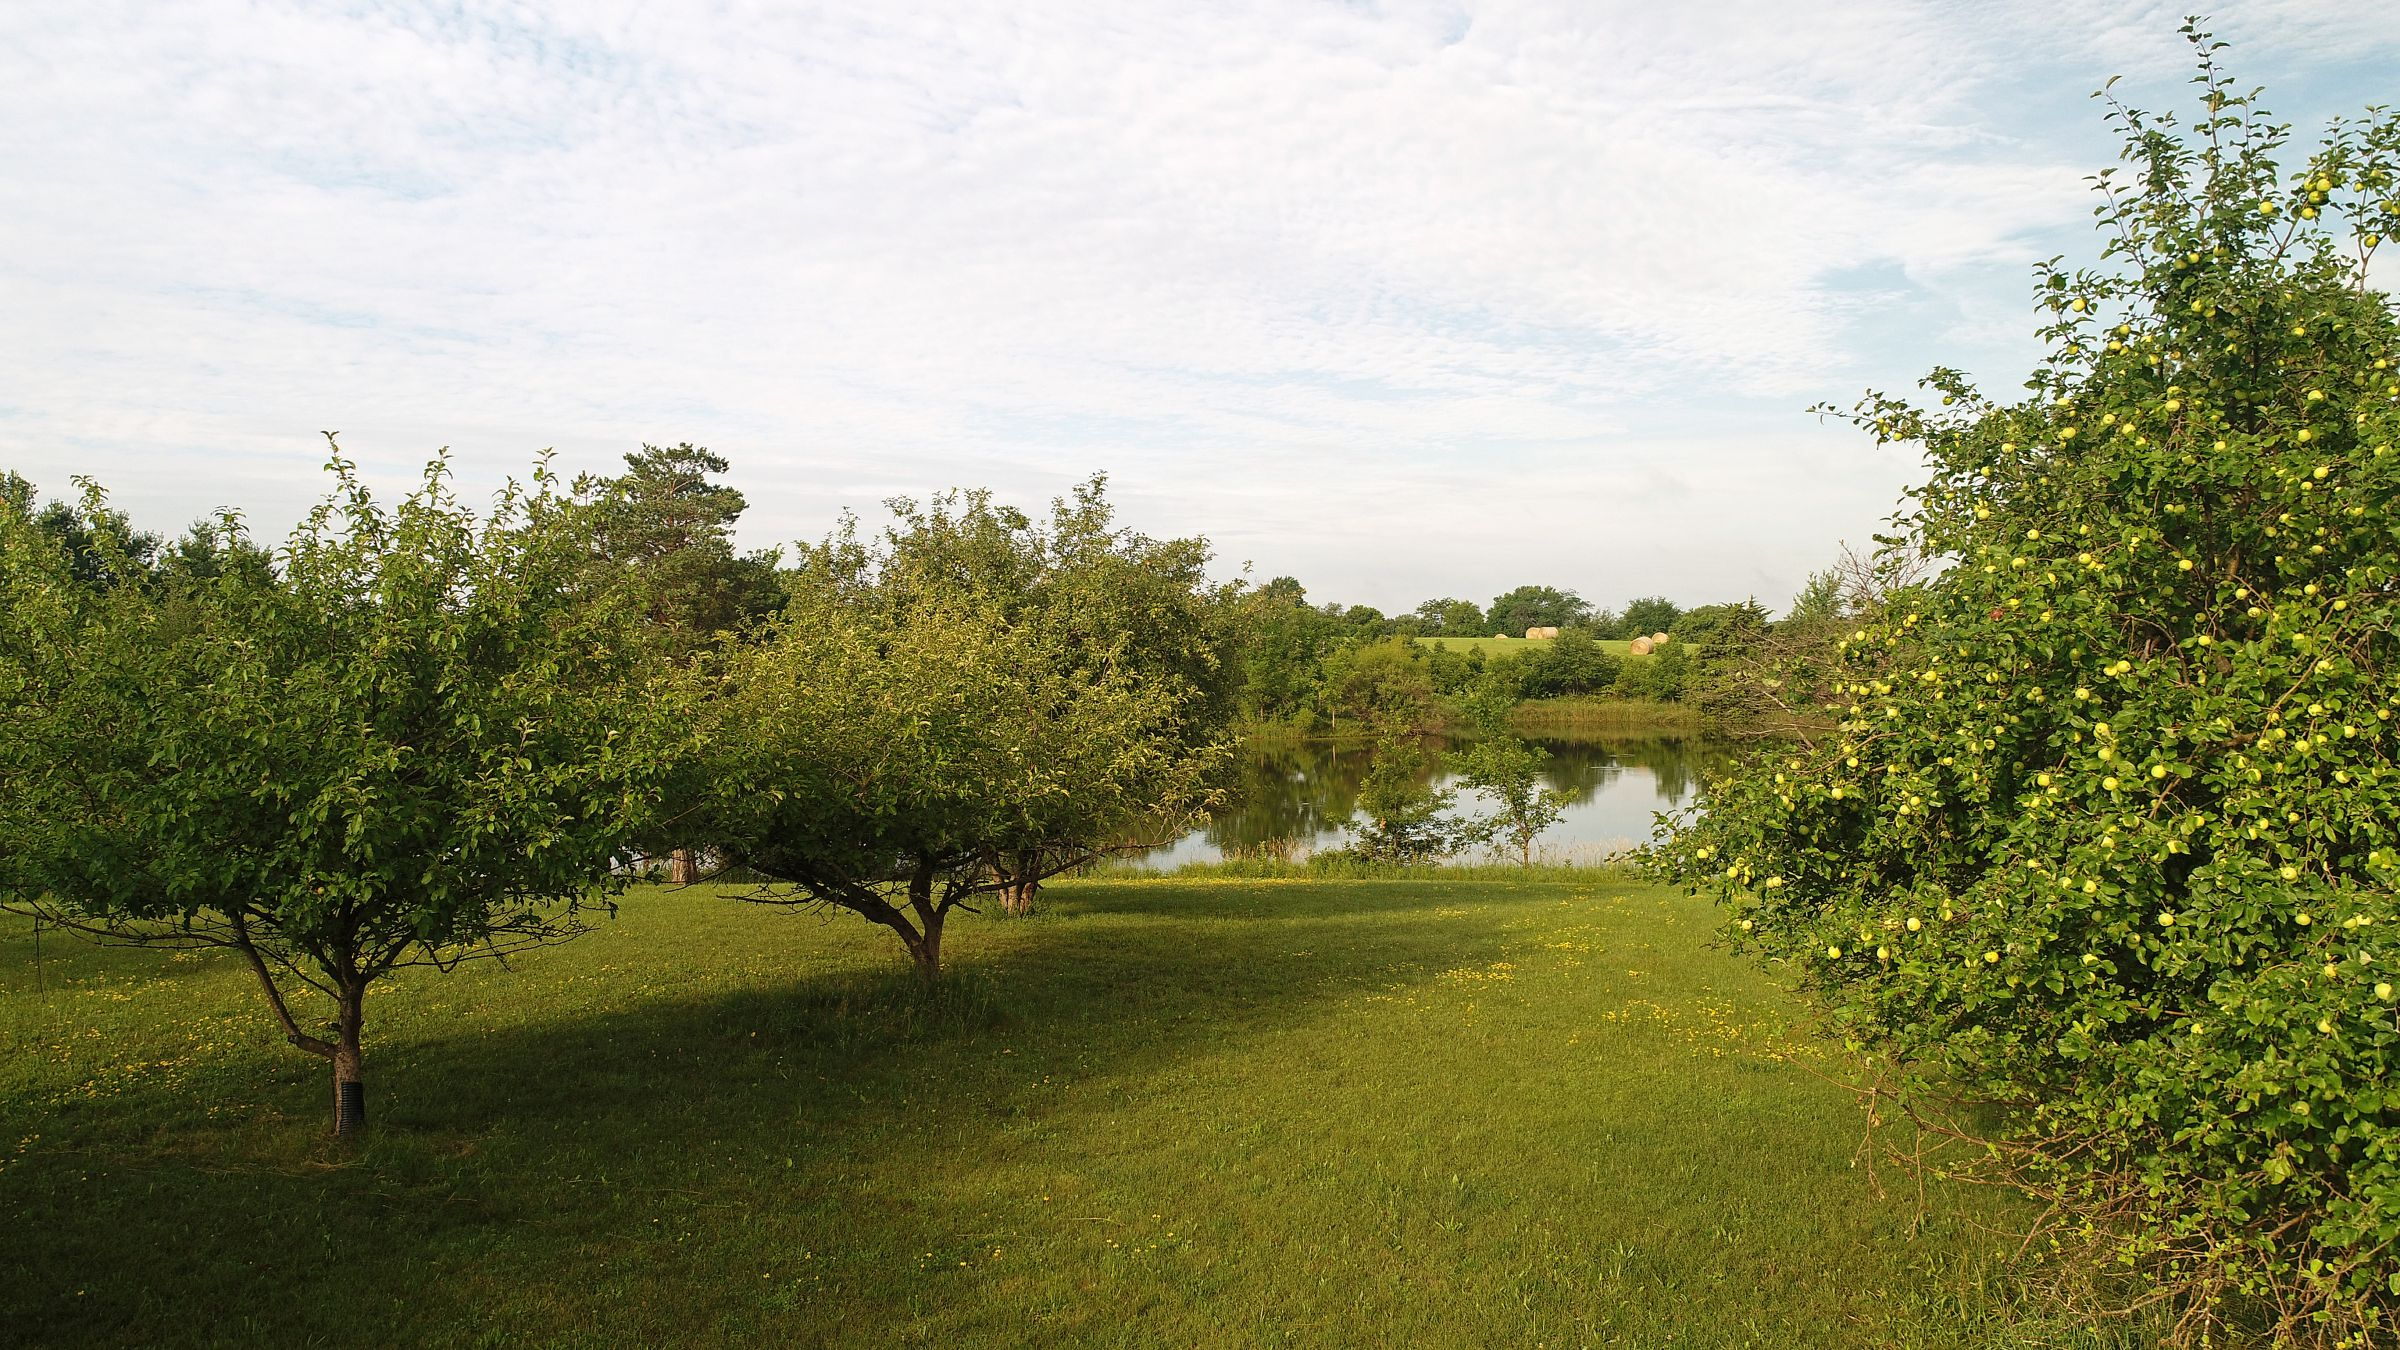 residential-lucas-county-iowa-9-acres-listing-number-15618-4-2021-06-30-170625.JPG